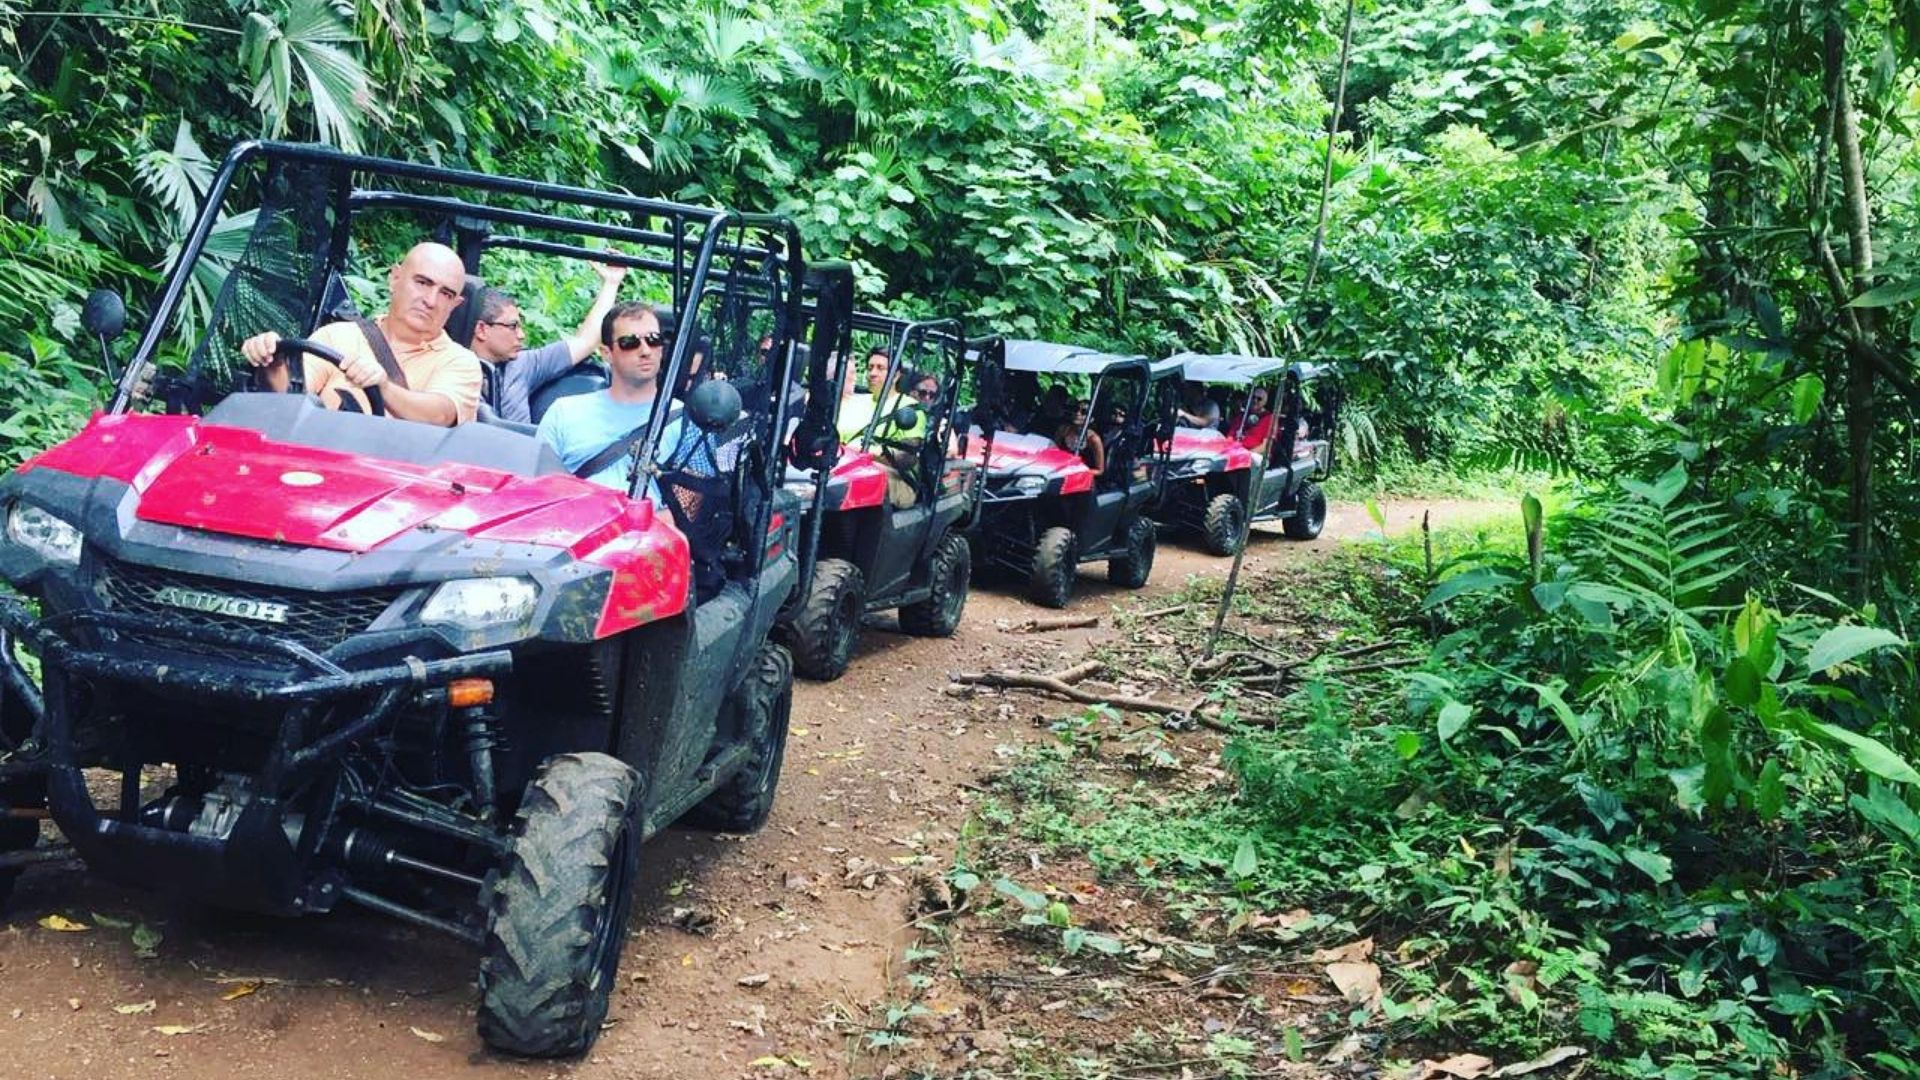 Groups Buggy tours